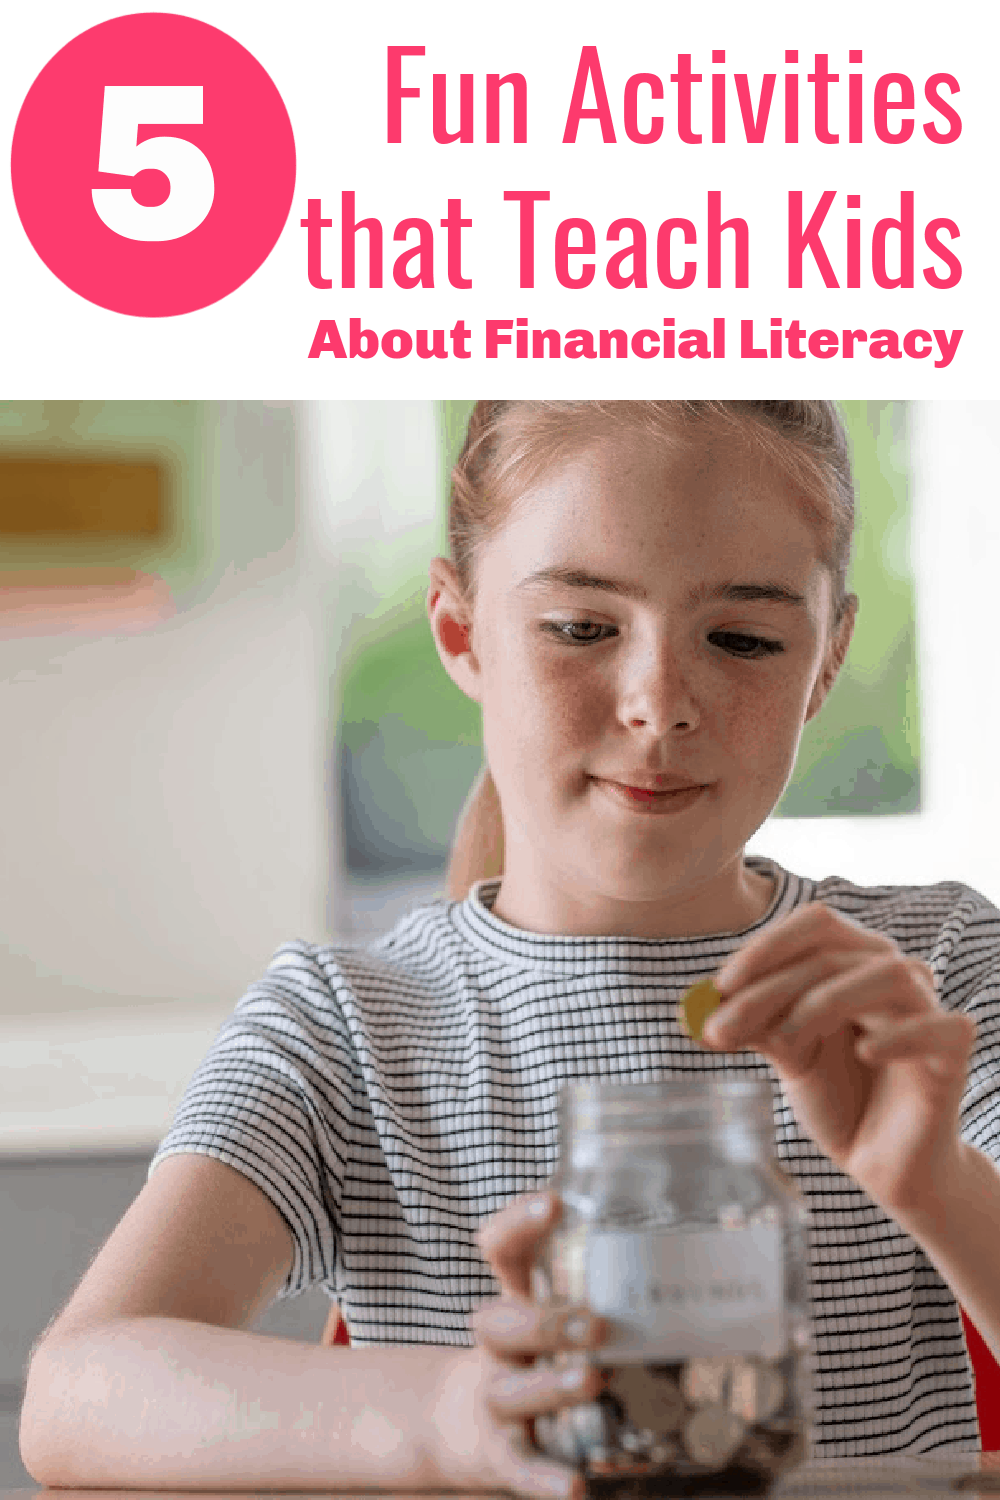 Looking for ways to make learning about financial literacy more fun for your kids? Check out these free printable worksheets, plus tips on how to use them!